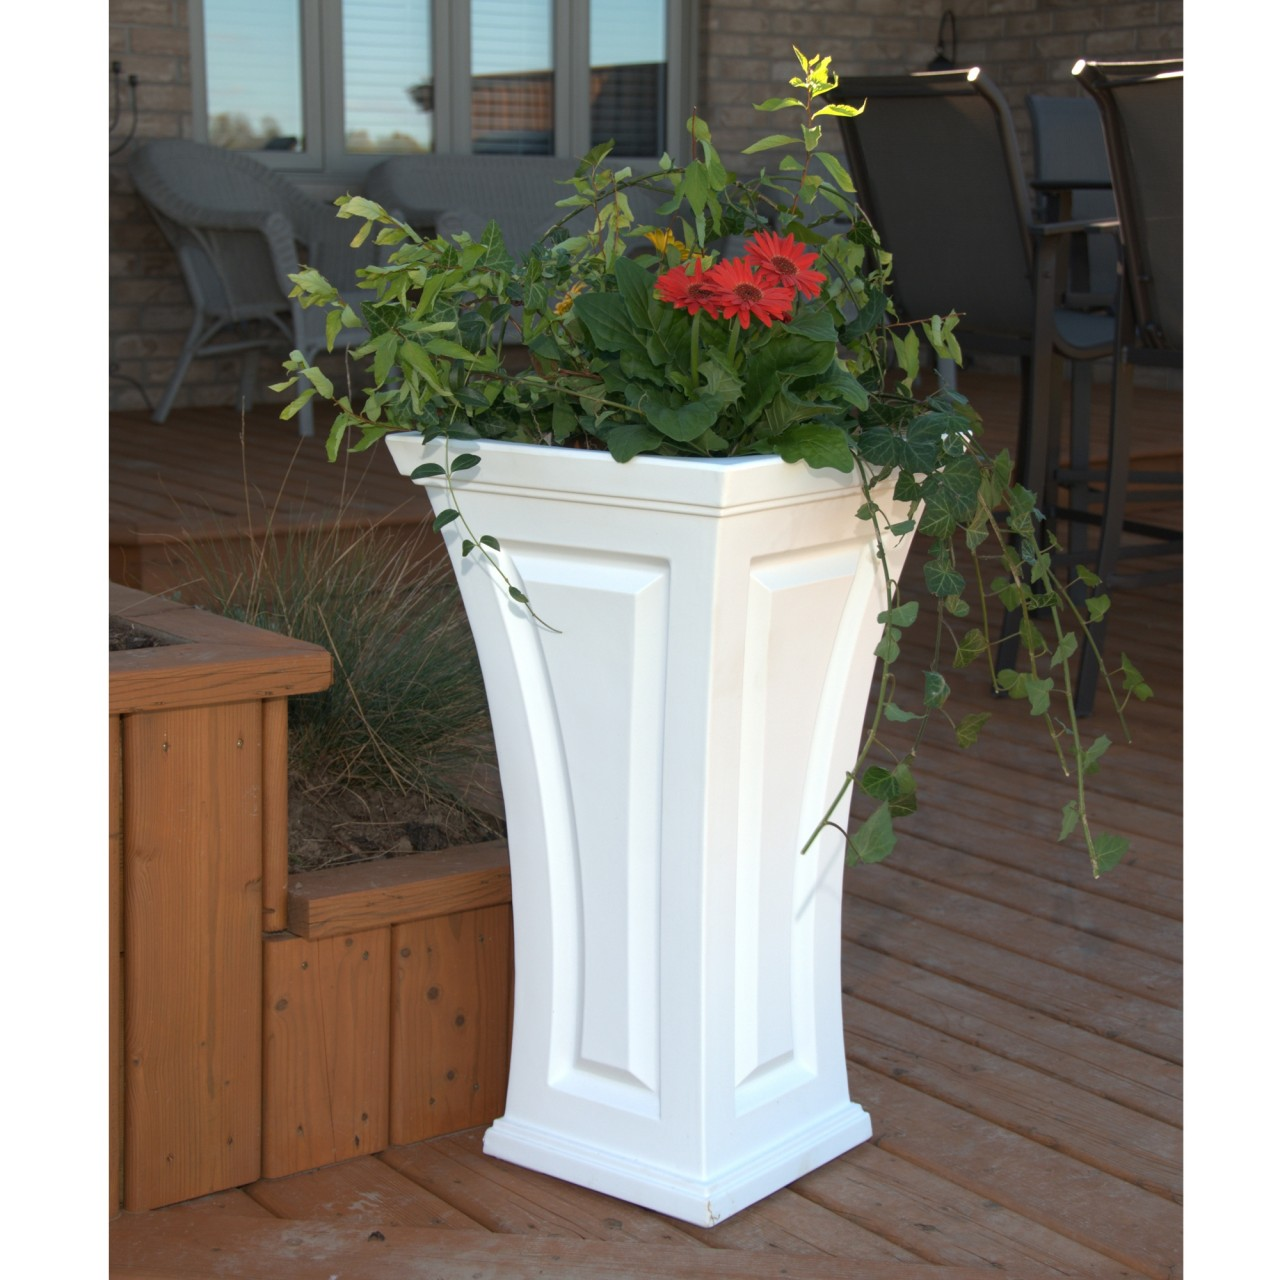 Planter Urns | Tall Planter Pots | Tall Planters